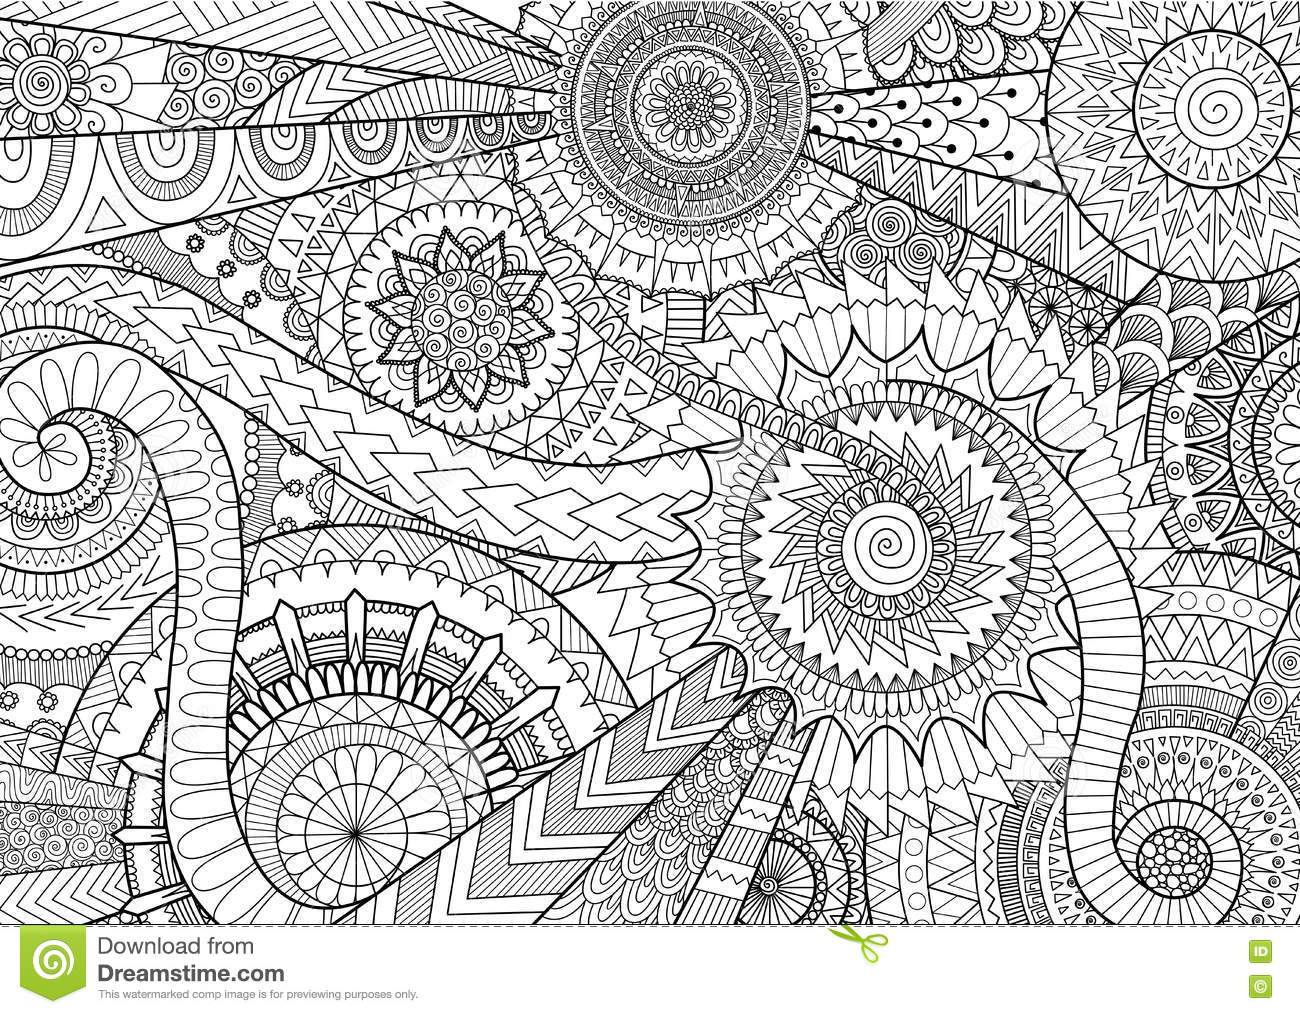 Printable Difficult Animals Coloring Pages For Adults Cgp as well Cpbllyki besides Aterx Jac in addition Color Me Happy further Nixnl T. on complicated coloring pages for adults